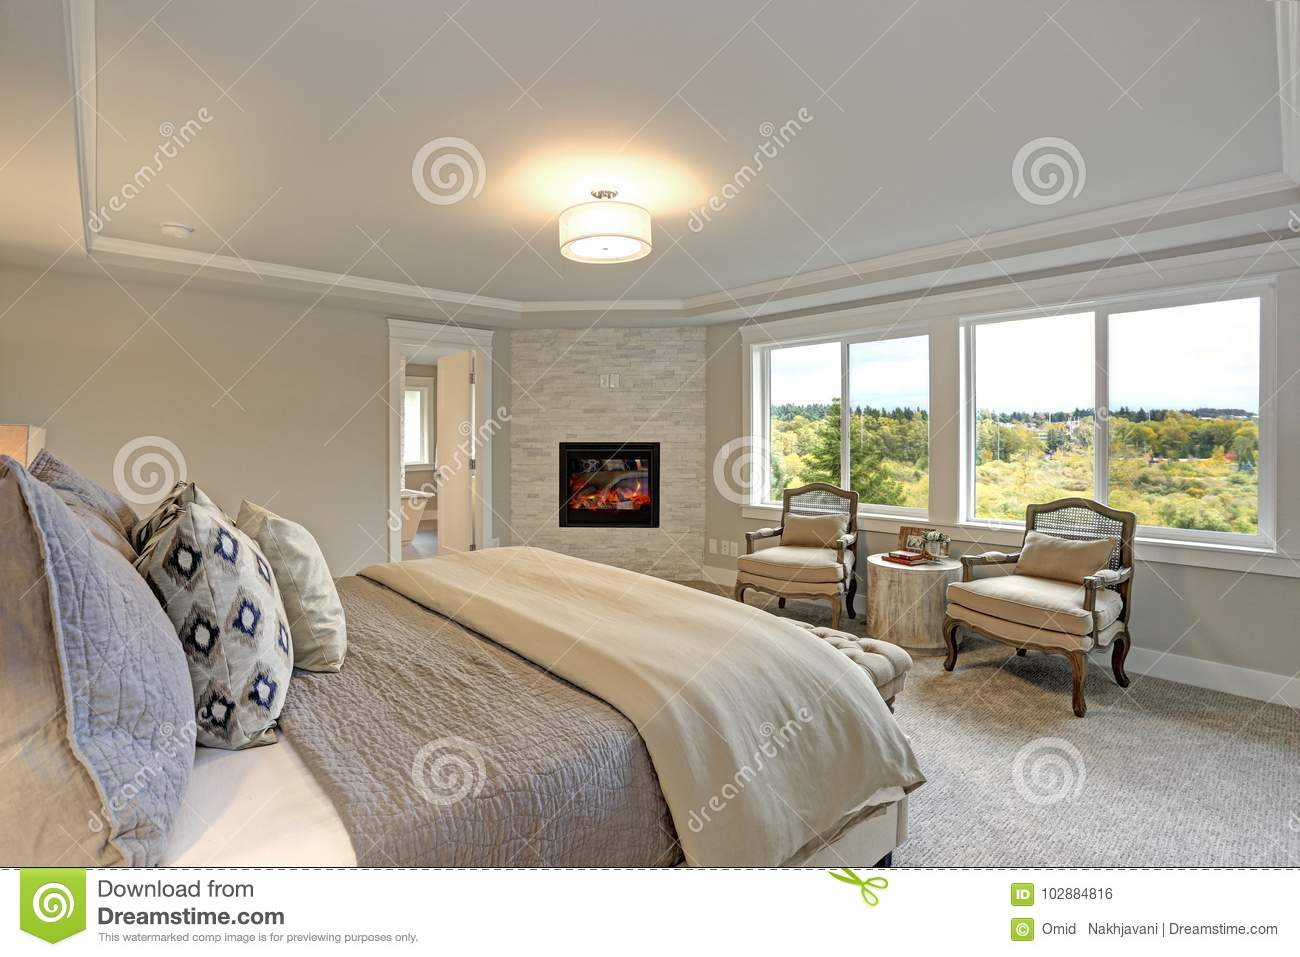 Reading Chairs For Bedroom Luxury Master Bedroom Interior Stock Photo Image Of Bedroom